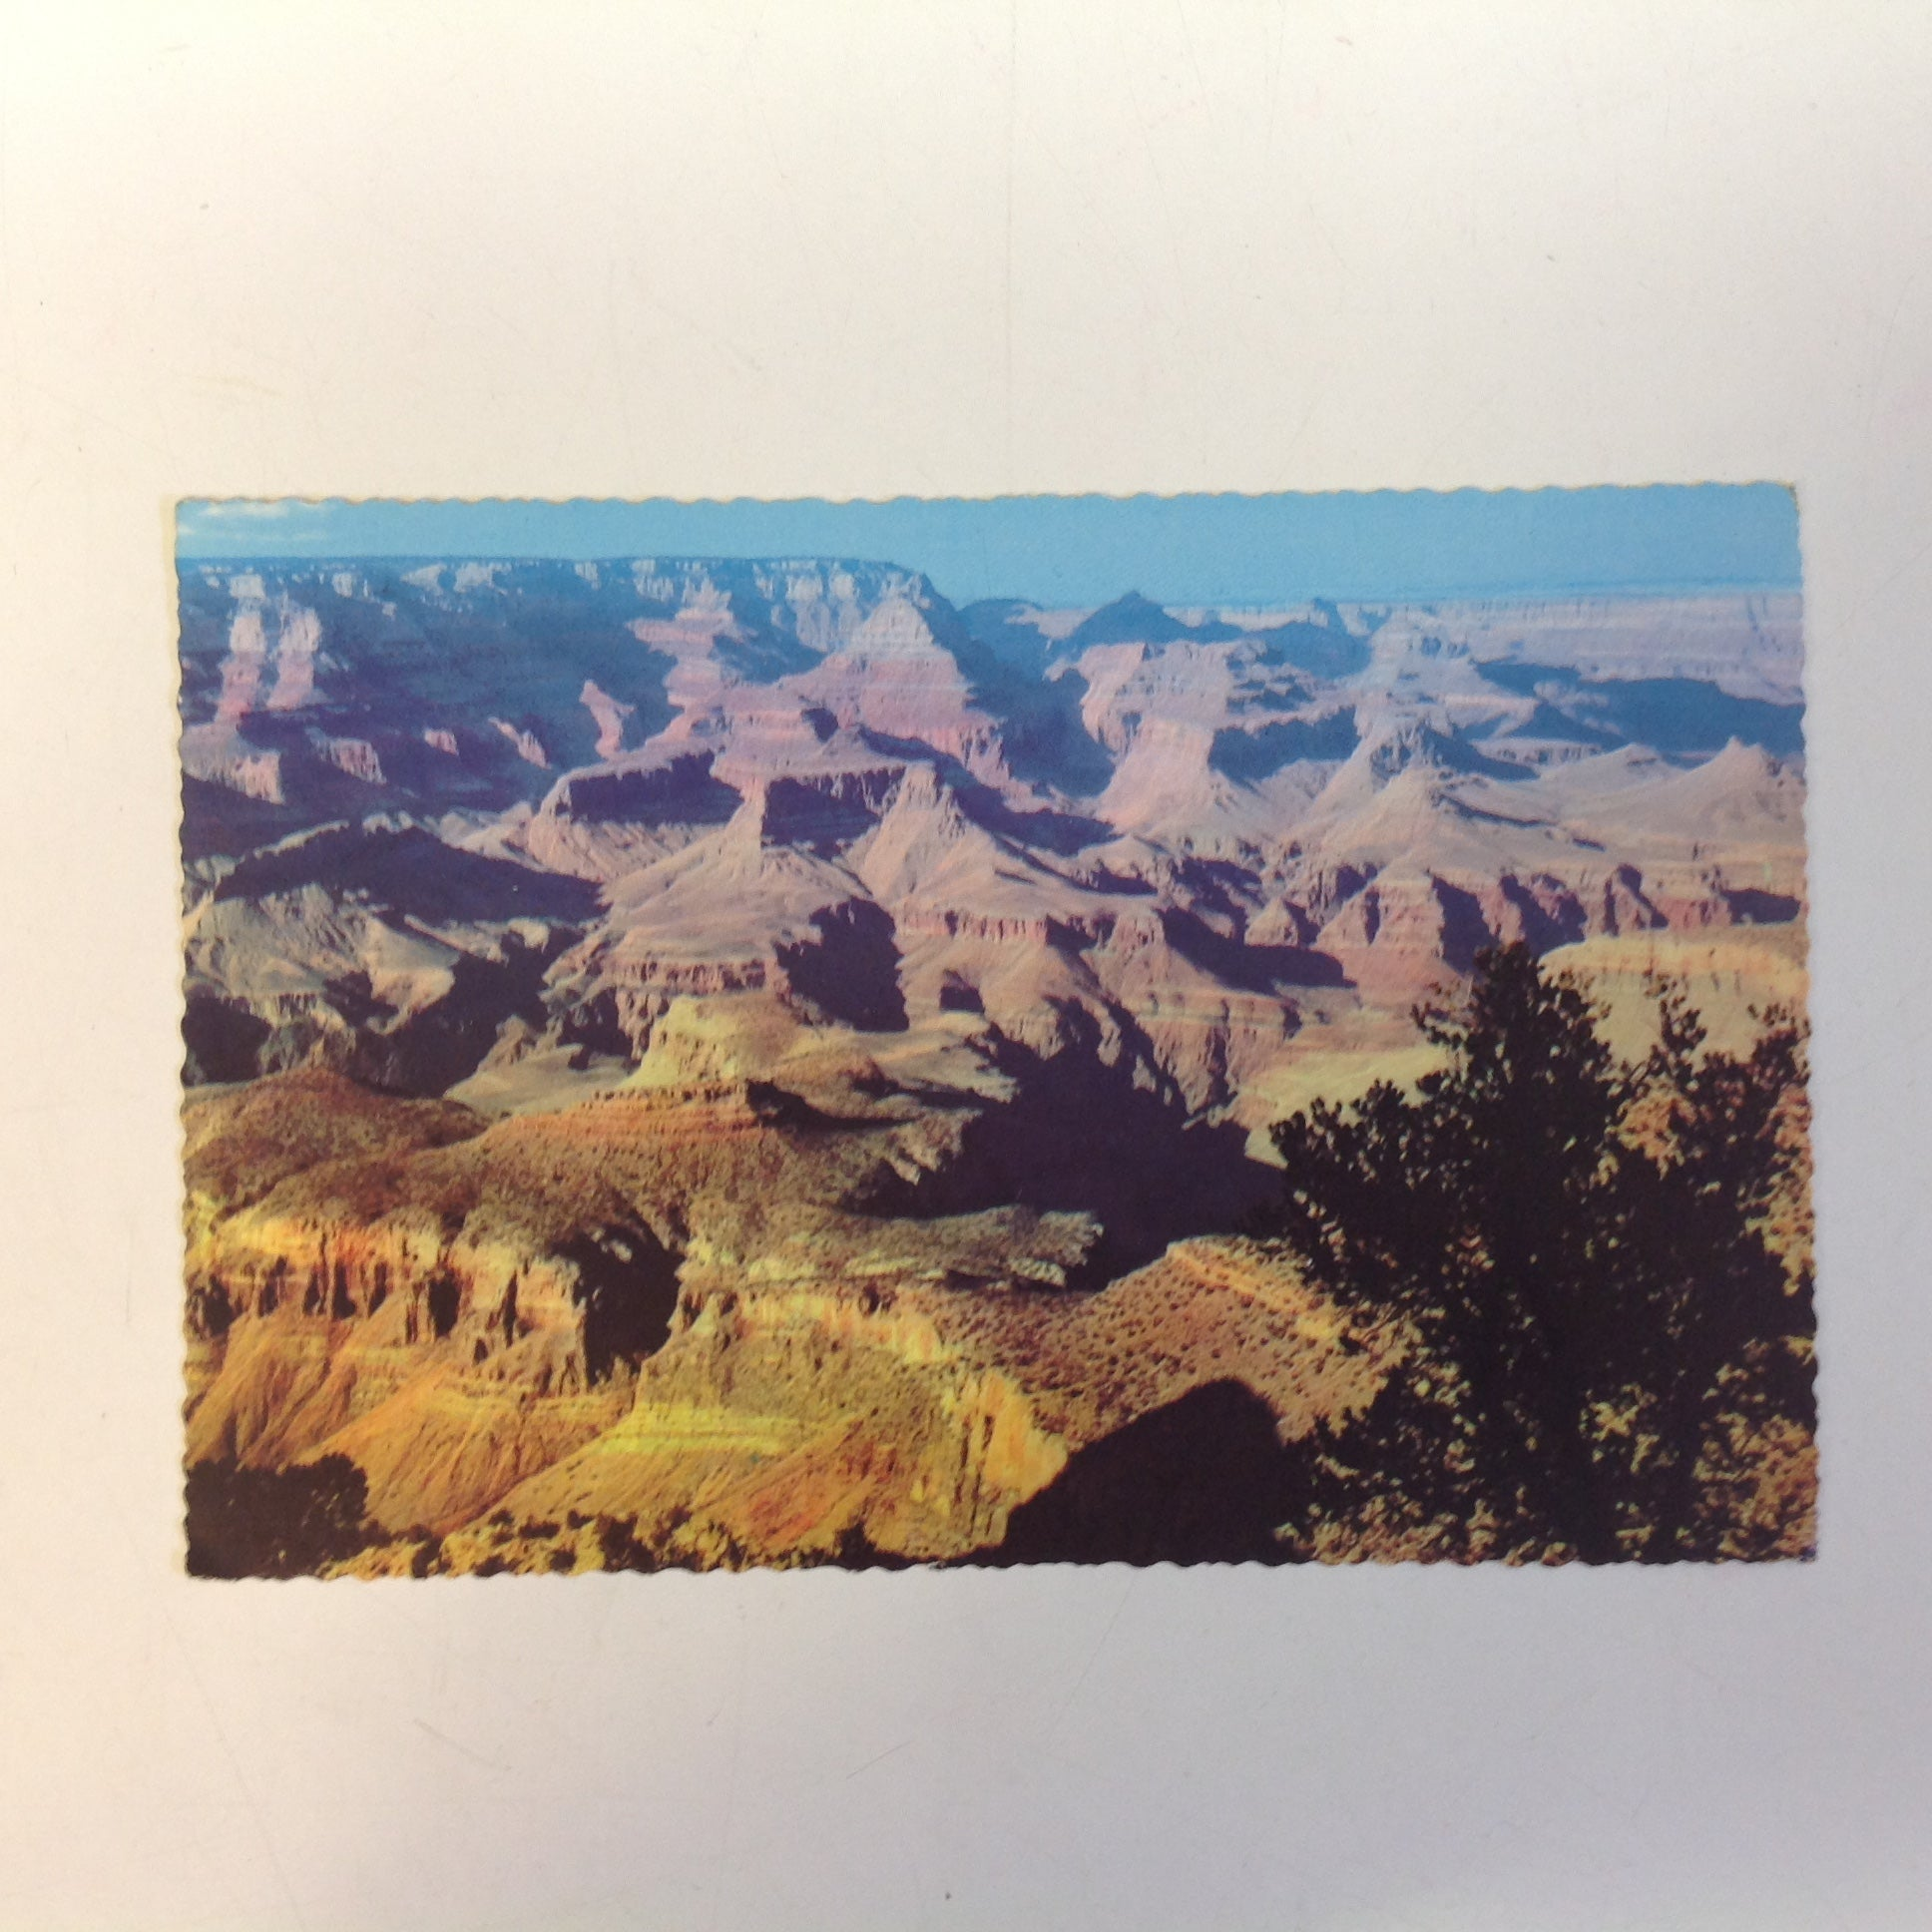 Vintage Petley Ektachrome Bob Fronske Souvenir Color Scalloped Edge Postcard Grand View Point South Rim Grand Canyon National Park North of US 66 Flagstaff-Williams Arizona